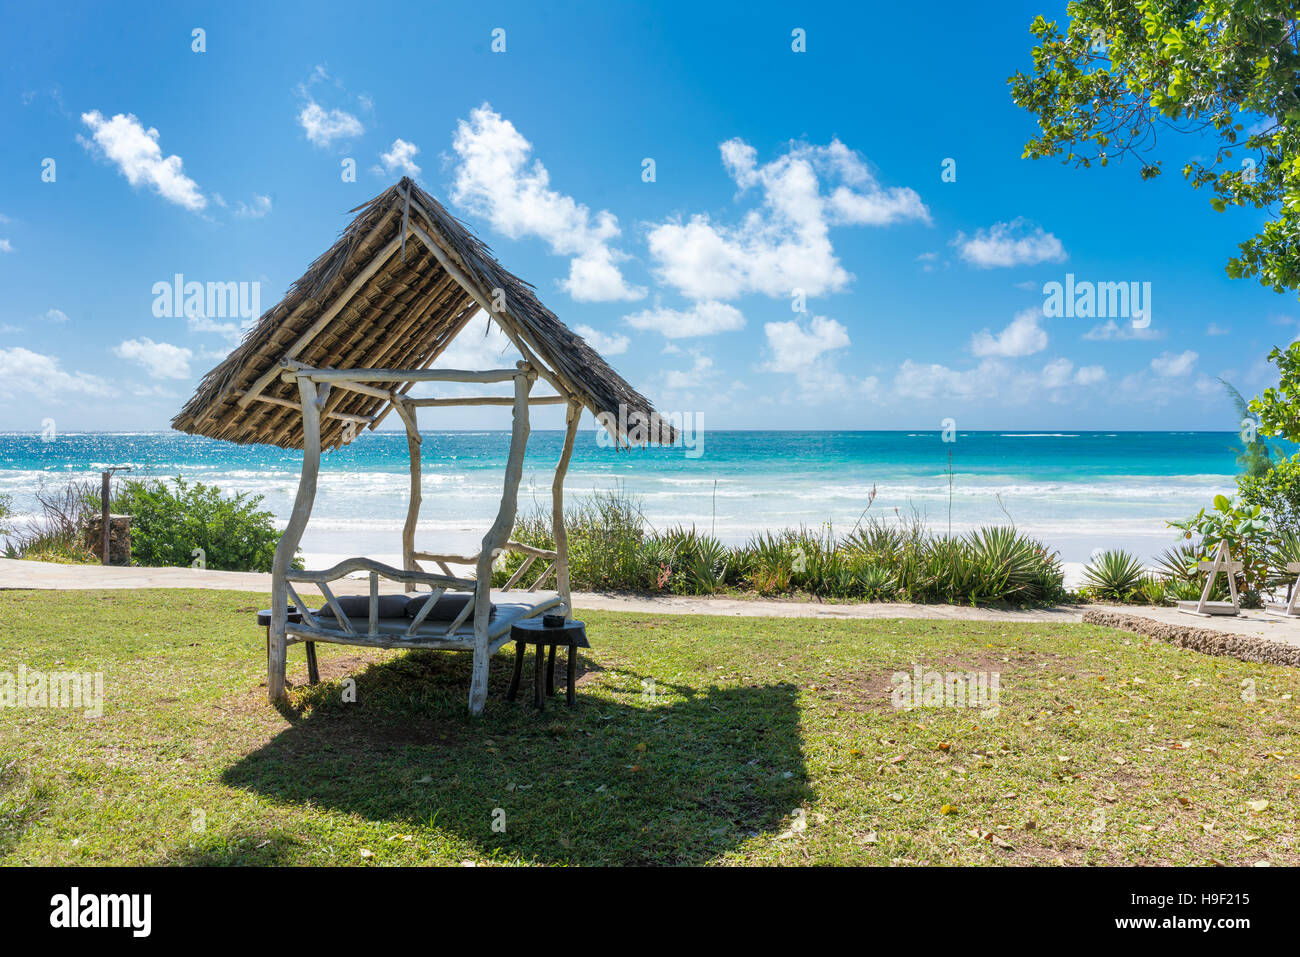 A shaded resting place with a thatched roof along Diani Beach - Stock Image